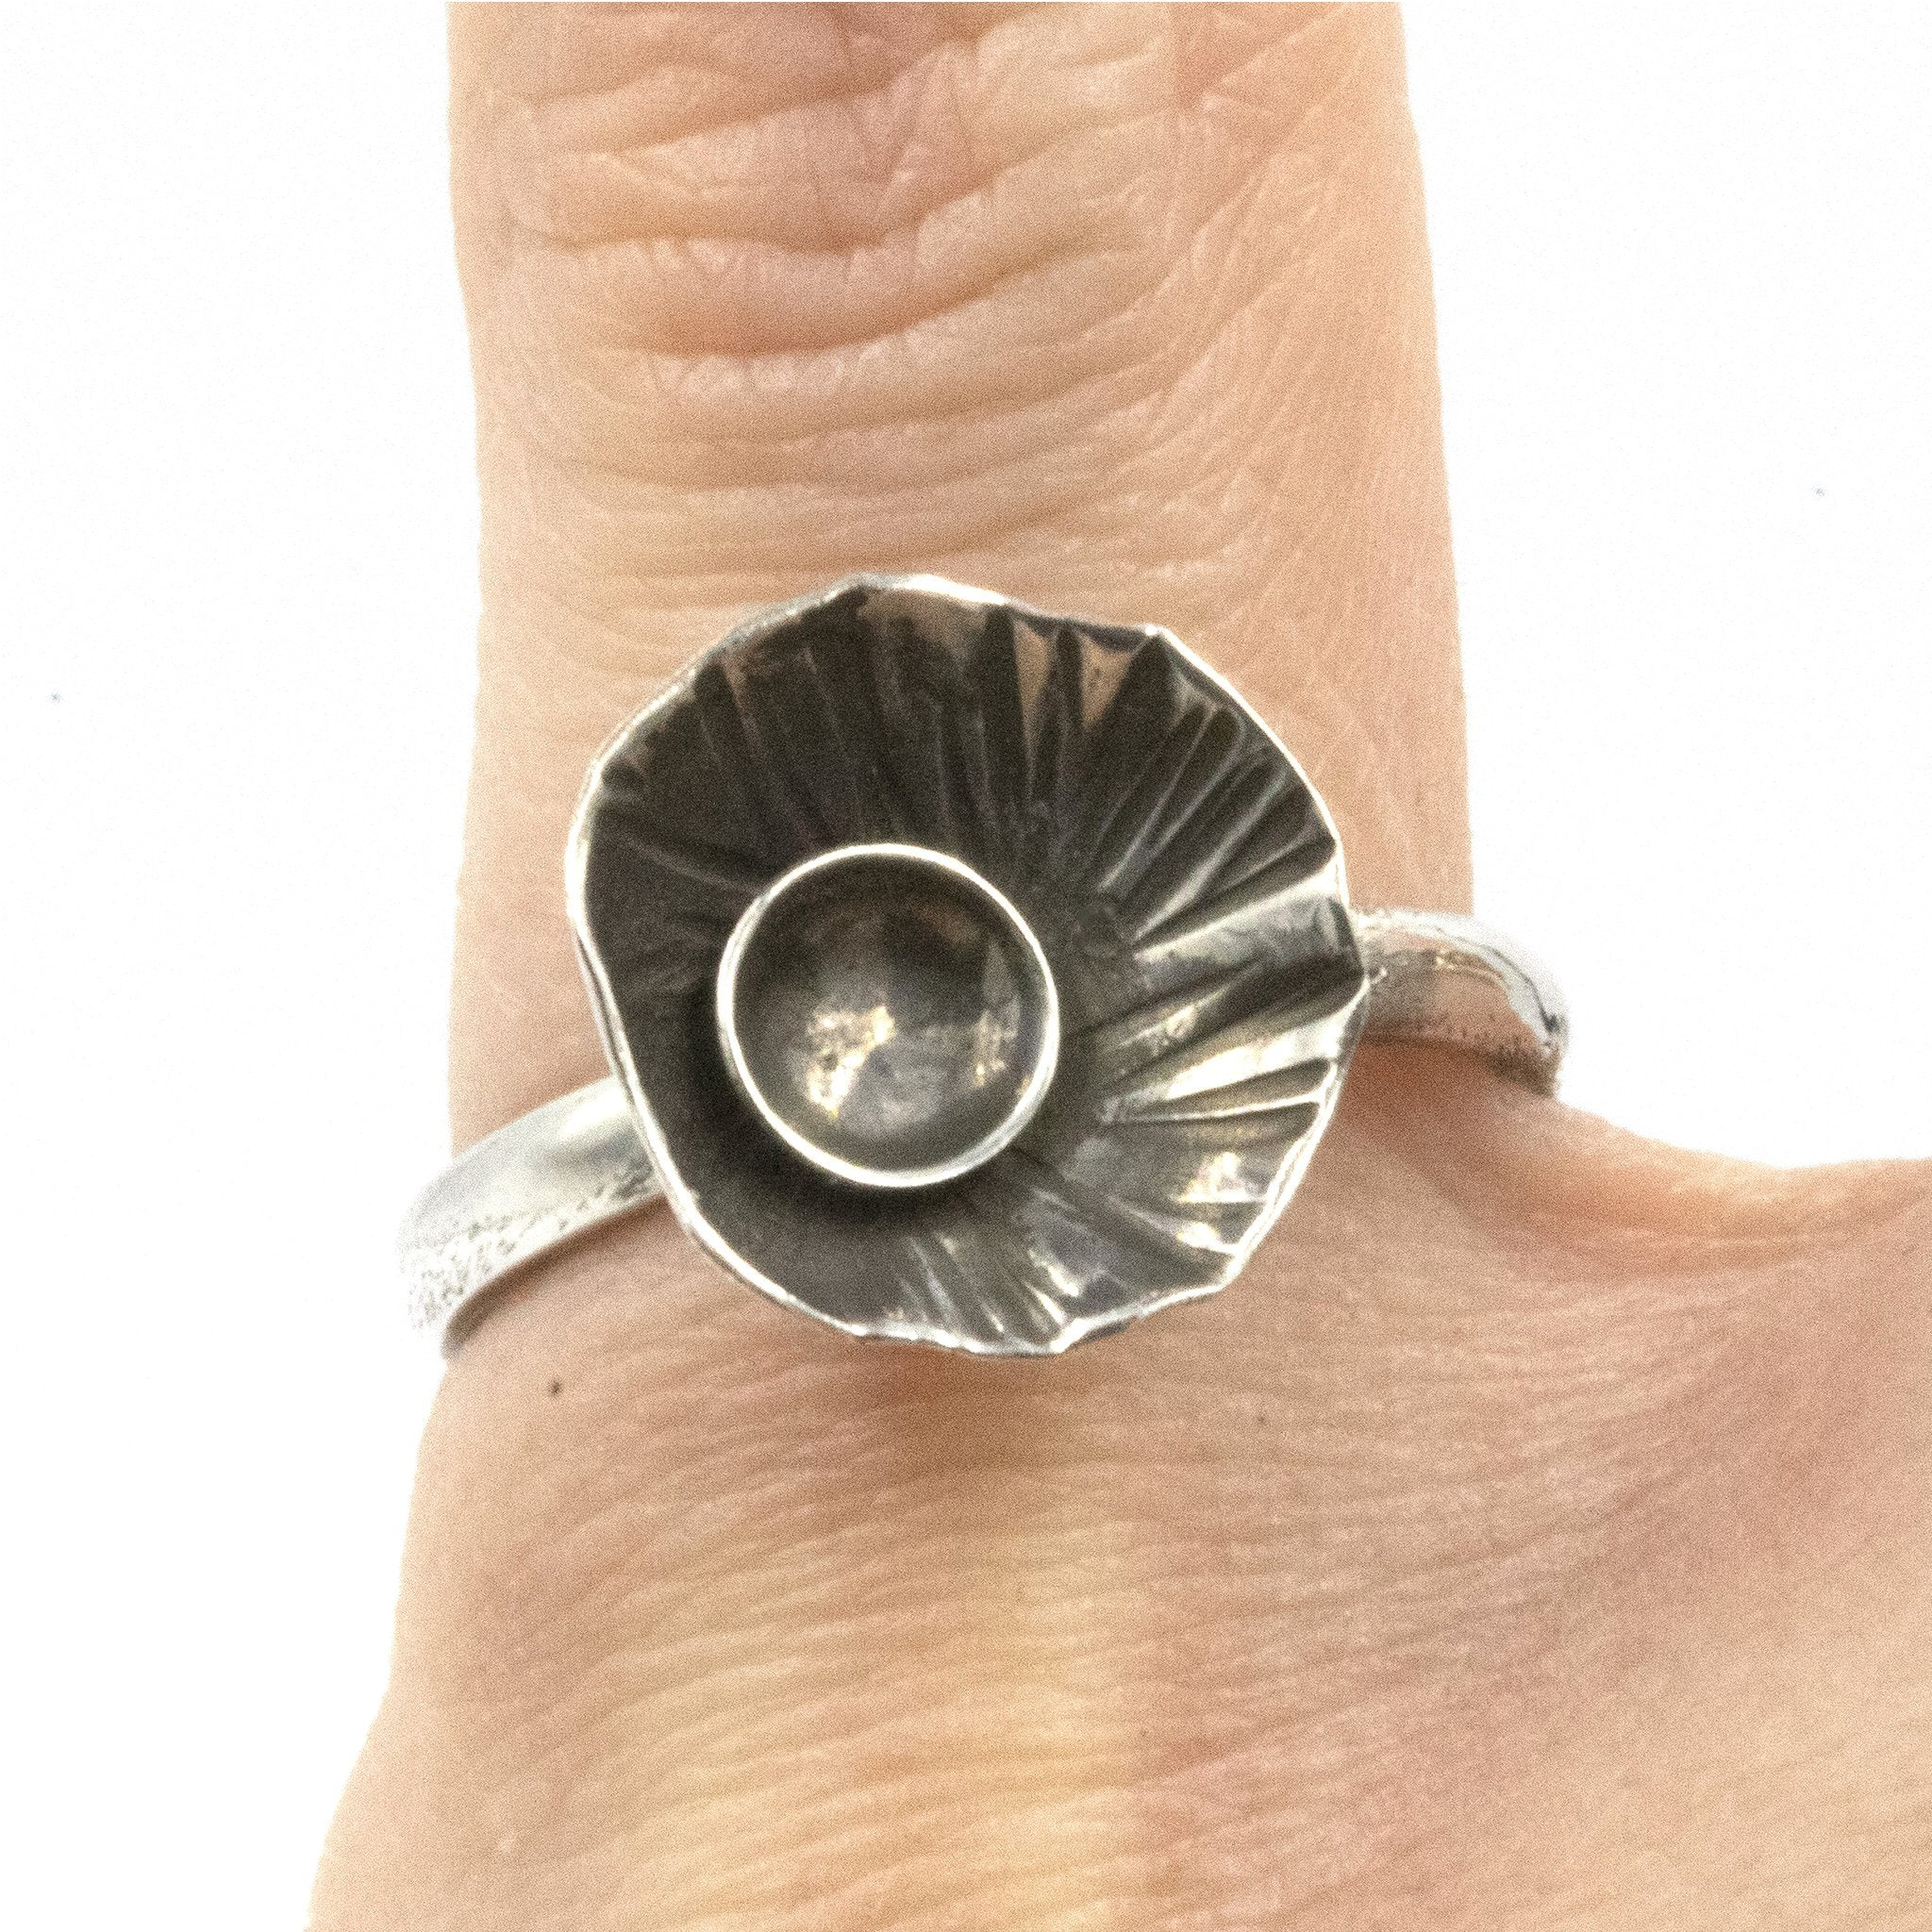 Handmade Rock Pool ring, made in sterling silver, and inspired by rock pools on the Cornish Coast